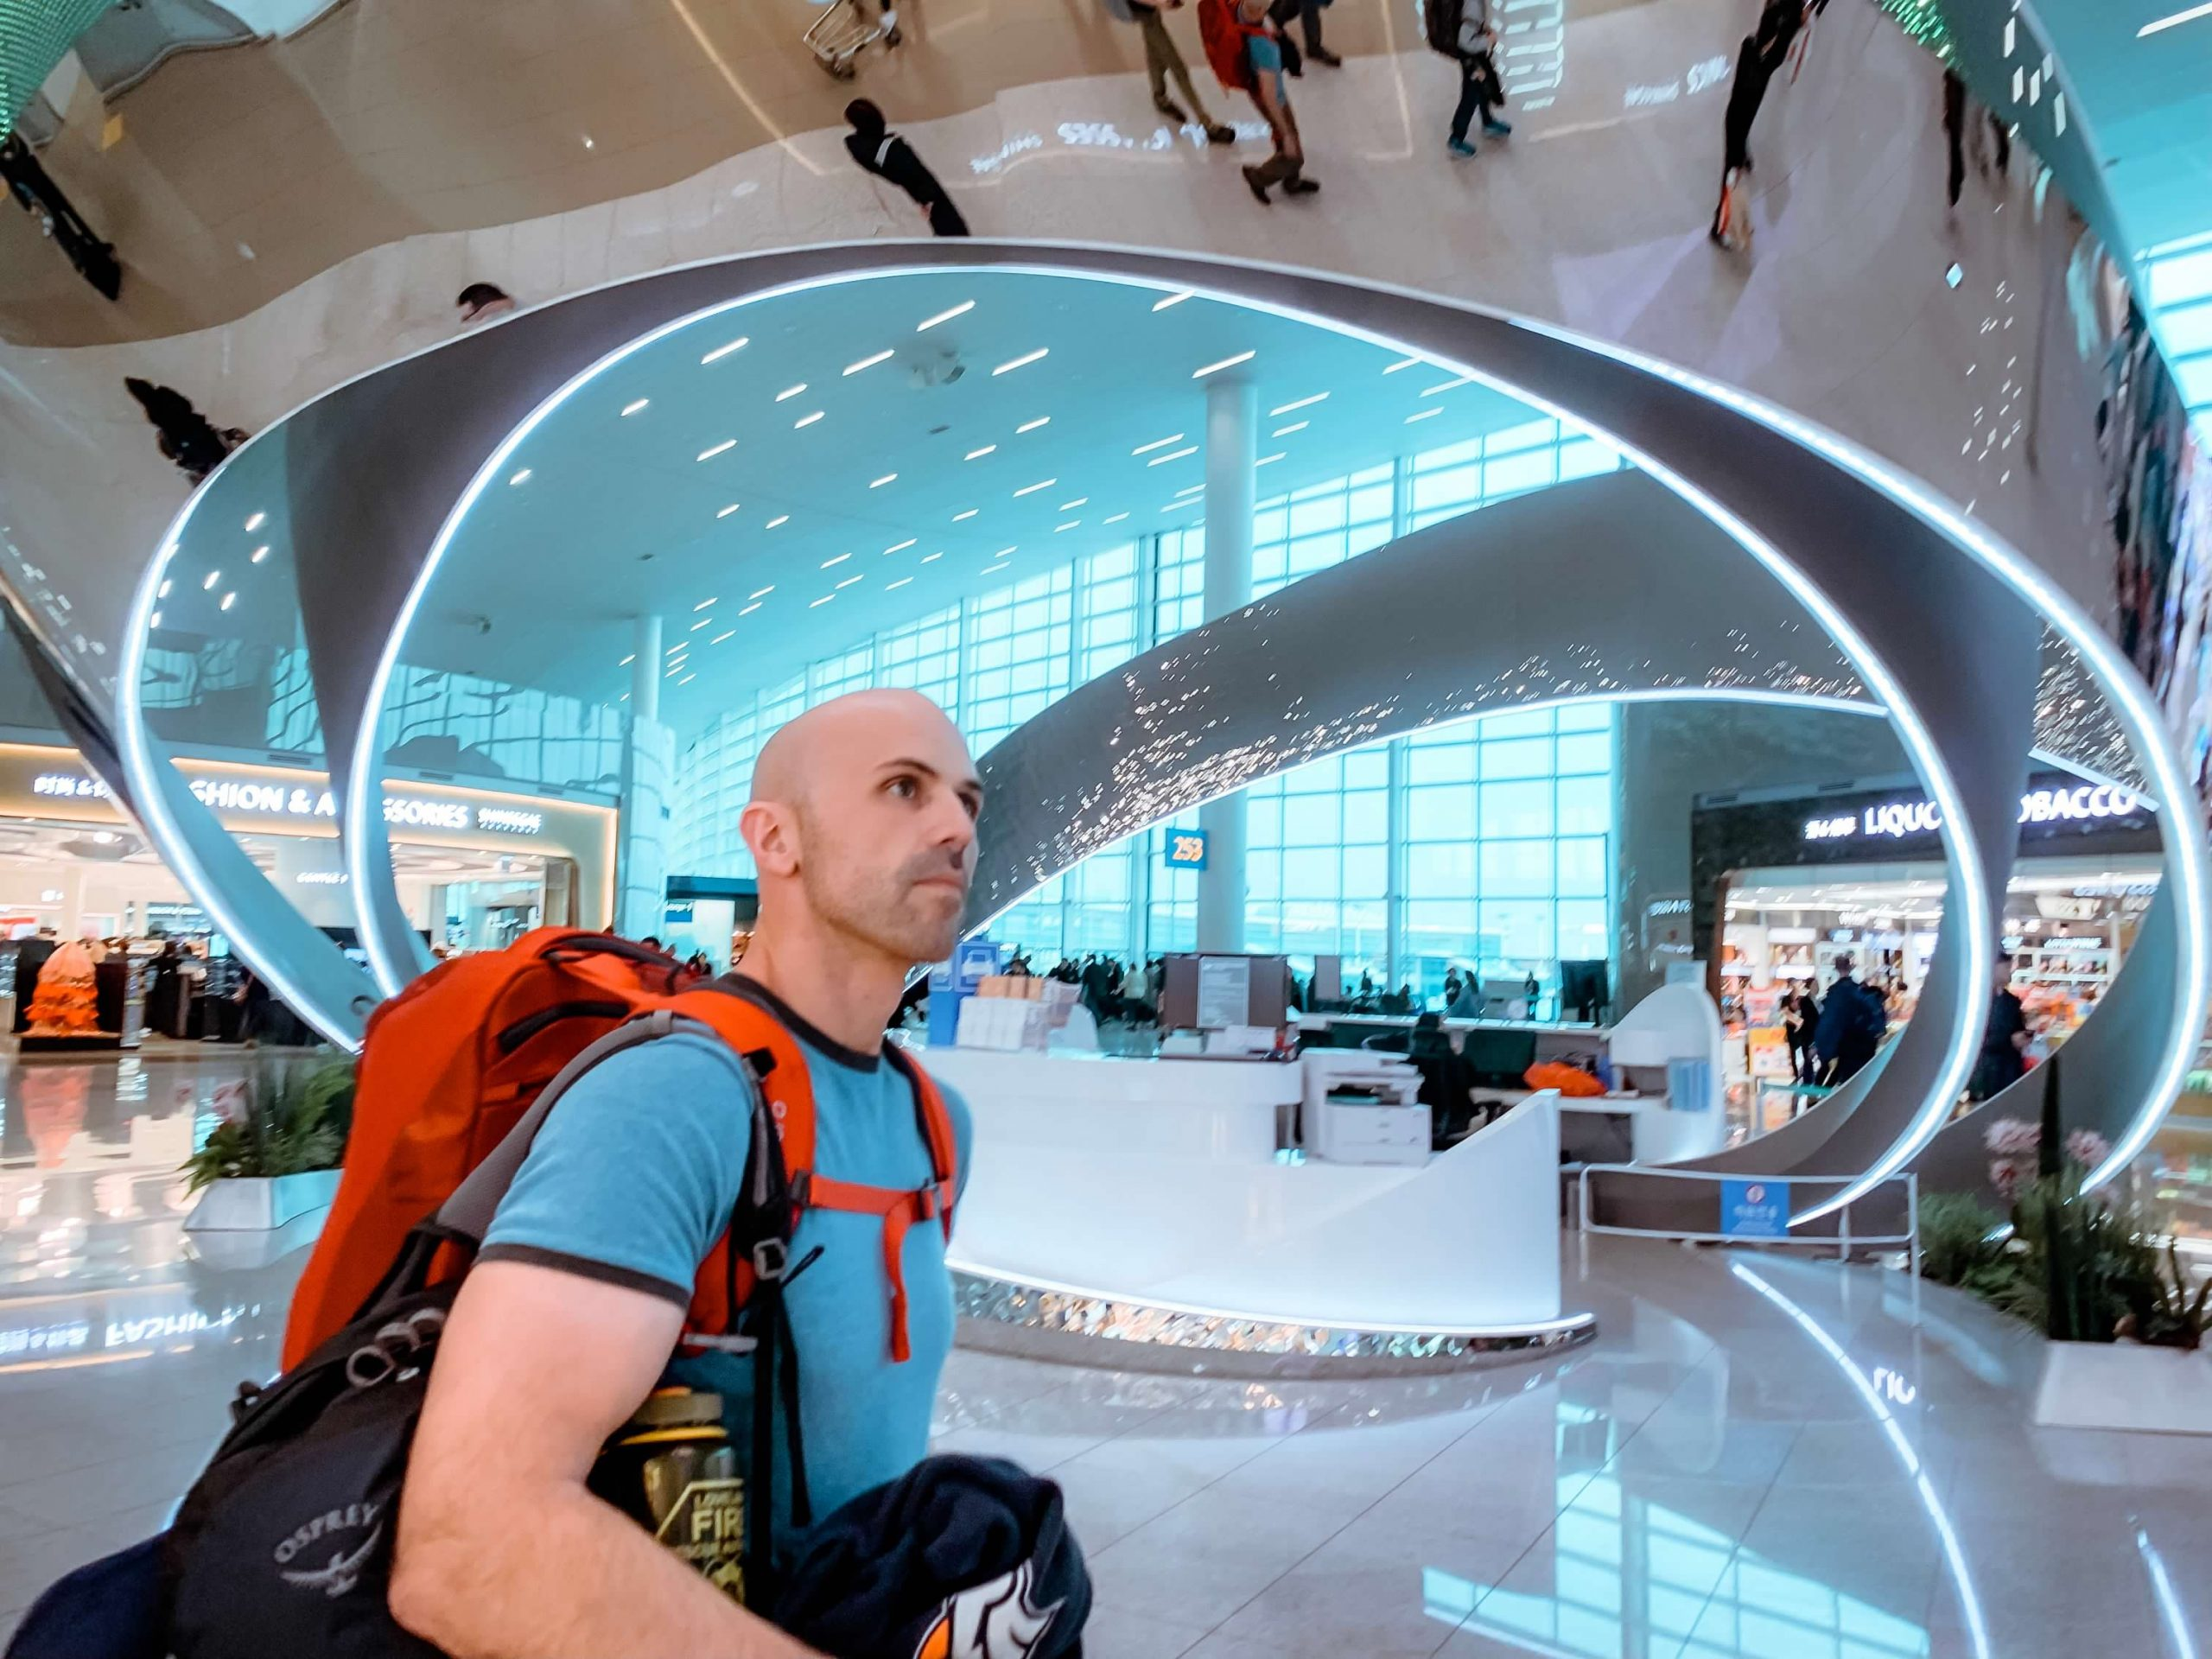 Osprey Porter 46 Travel Backpack in Incheon International Airport in South Korea